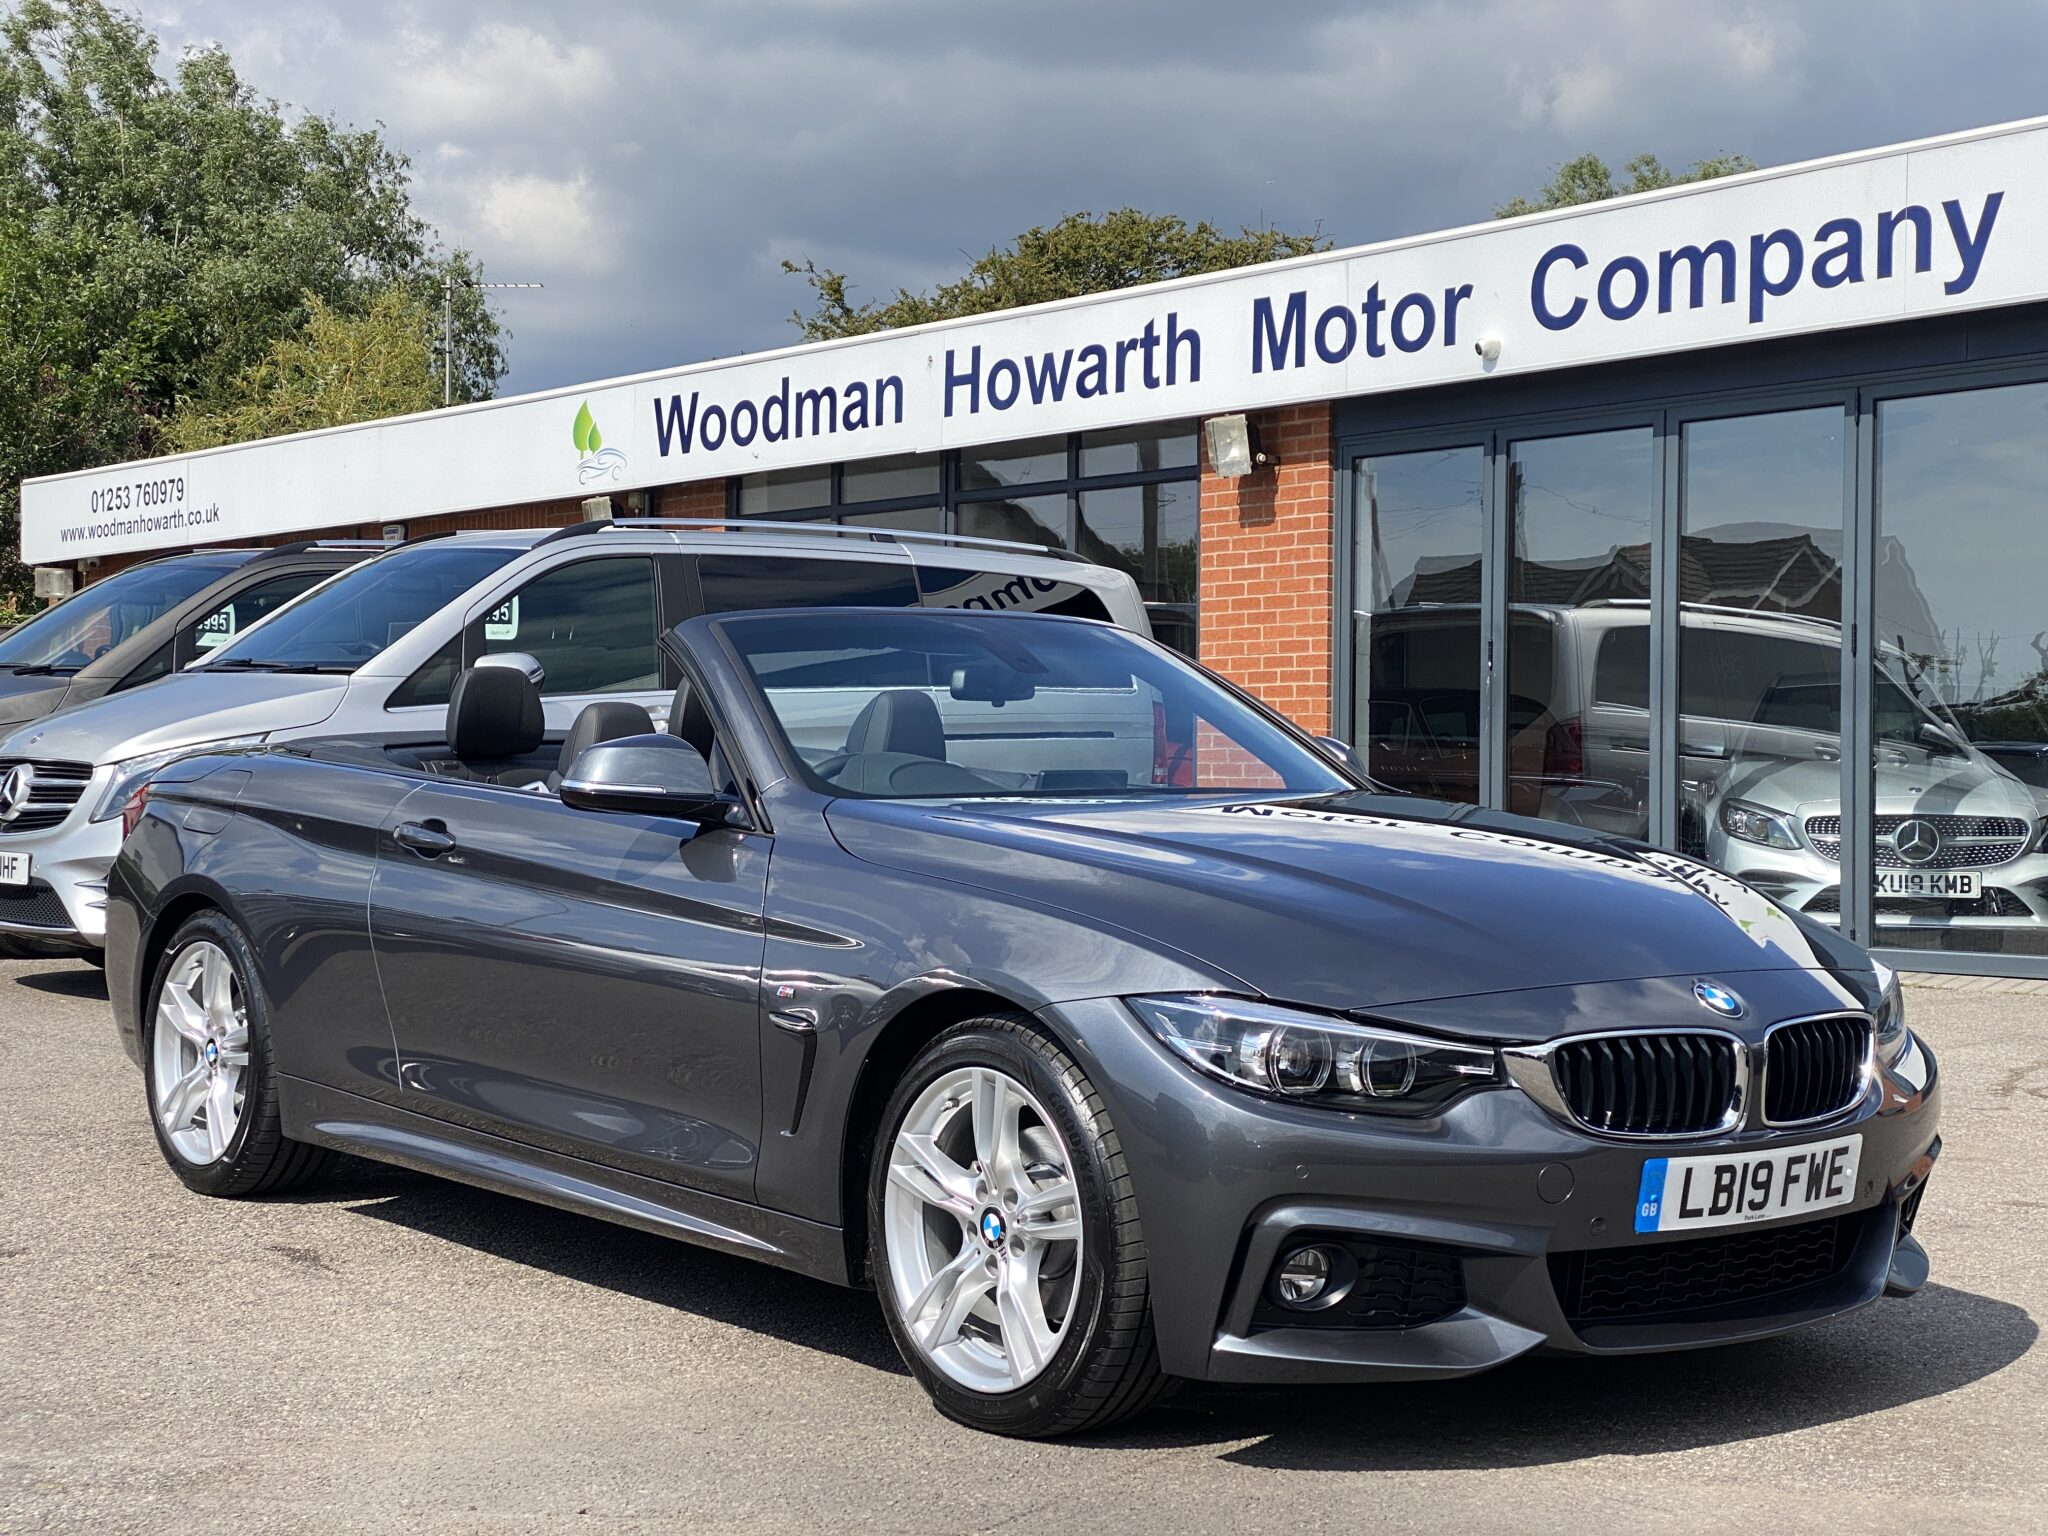 2019 19 BMW 420i AUTO CONVERTIBLE 1 Prev Owner FSH ONLY 2K Miles Pristine